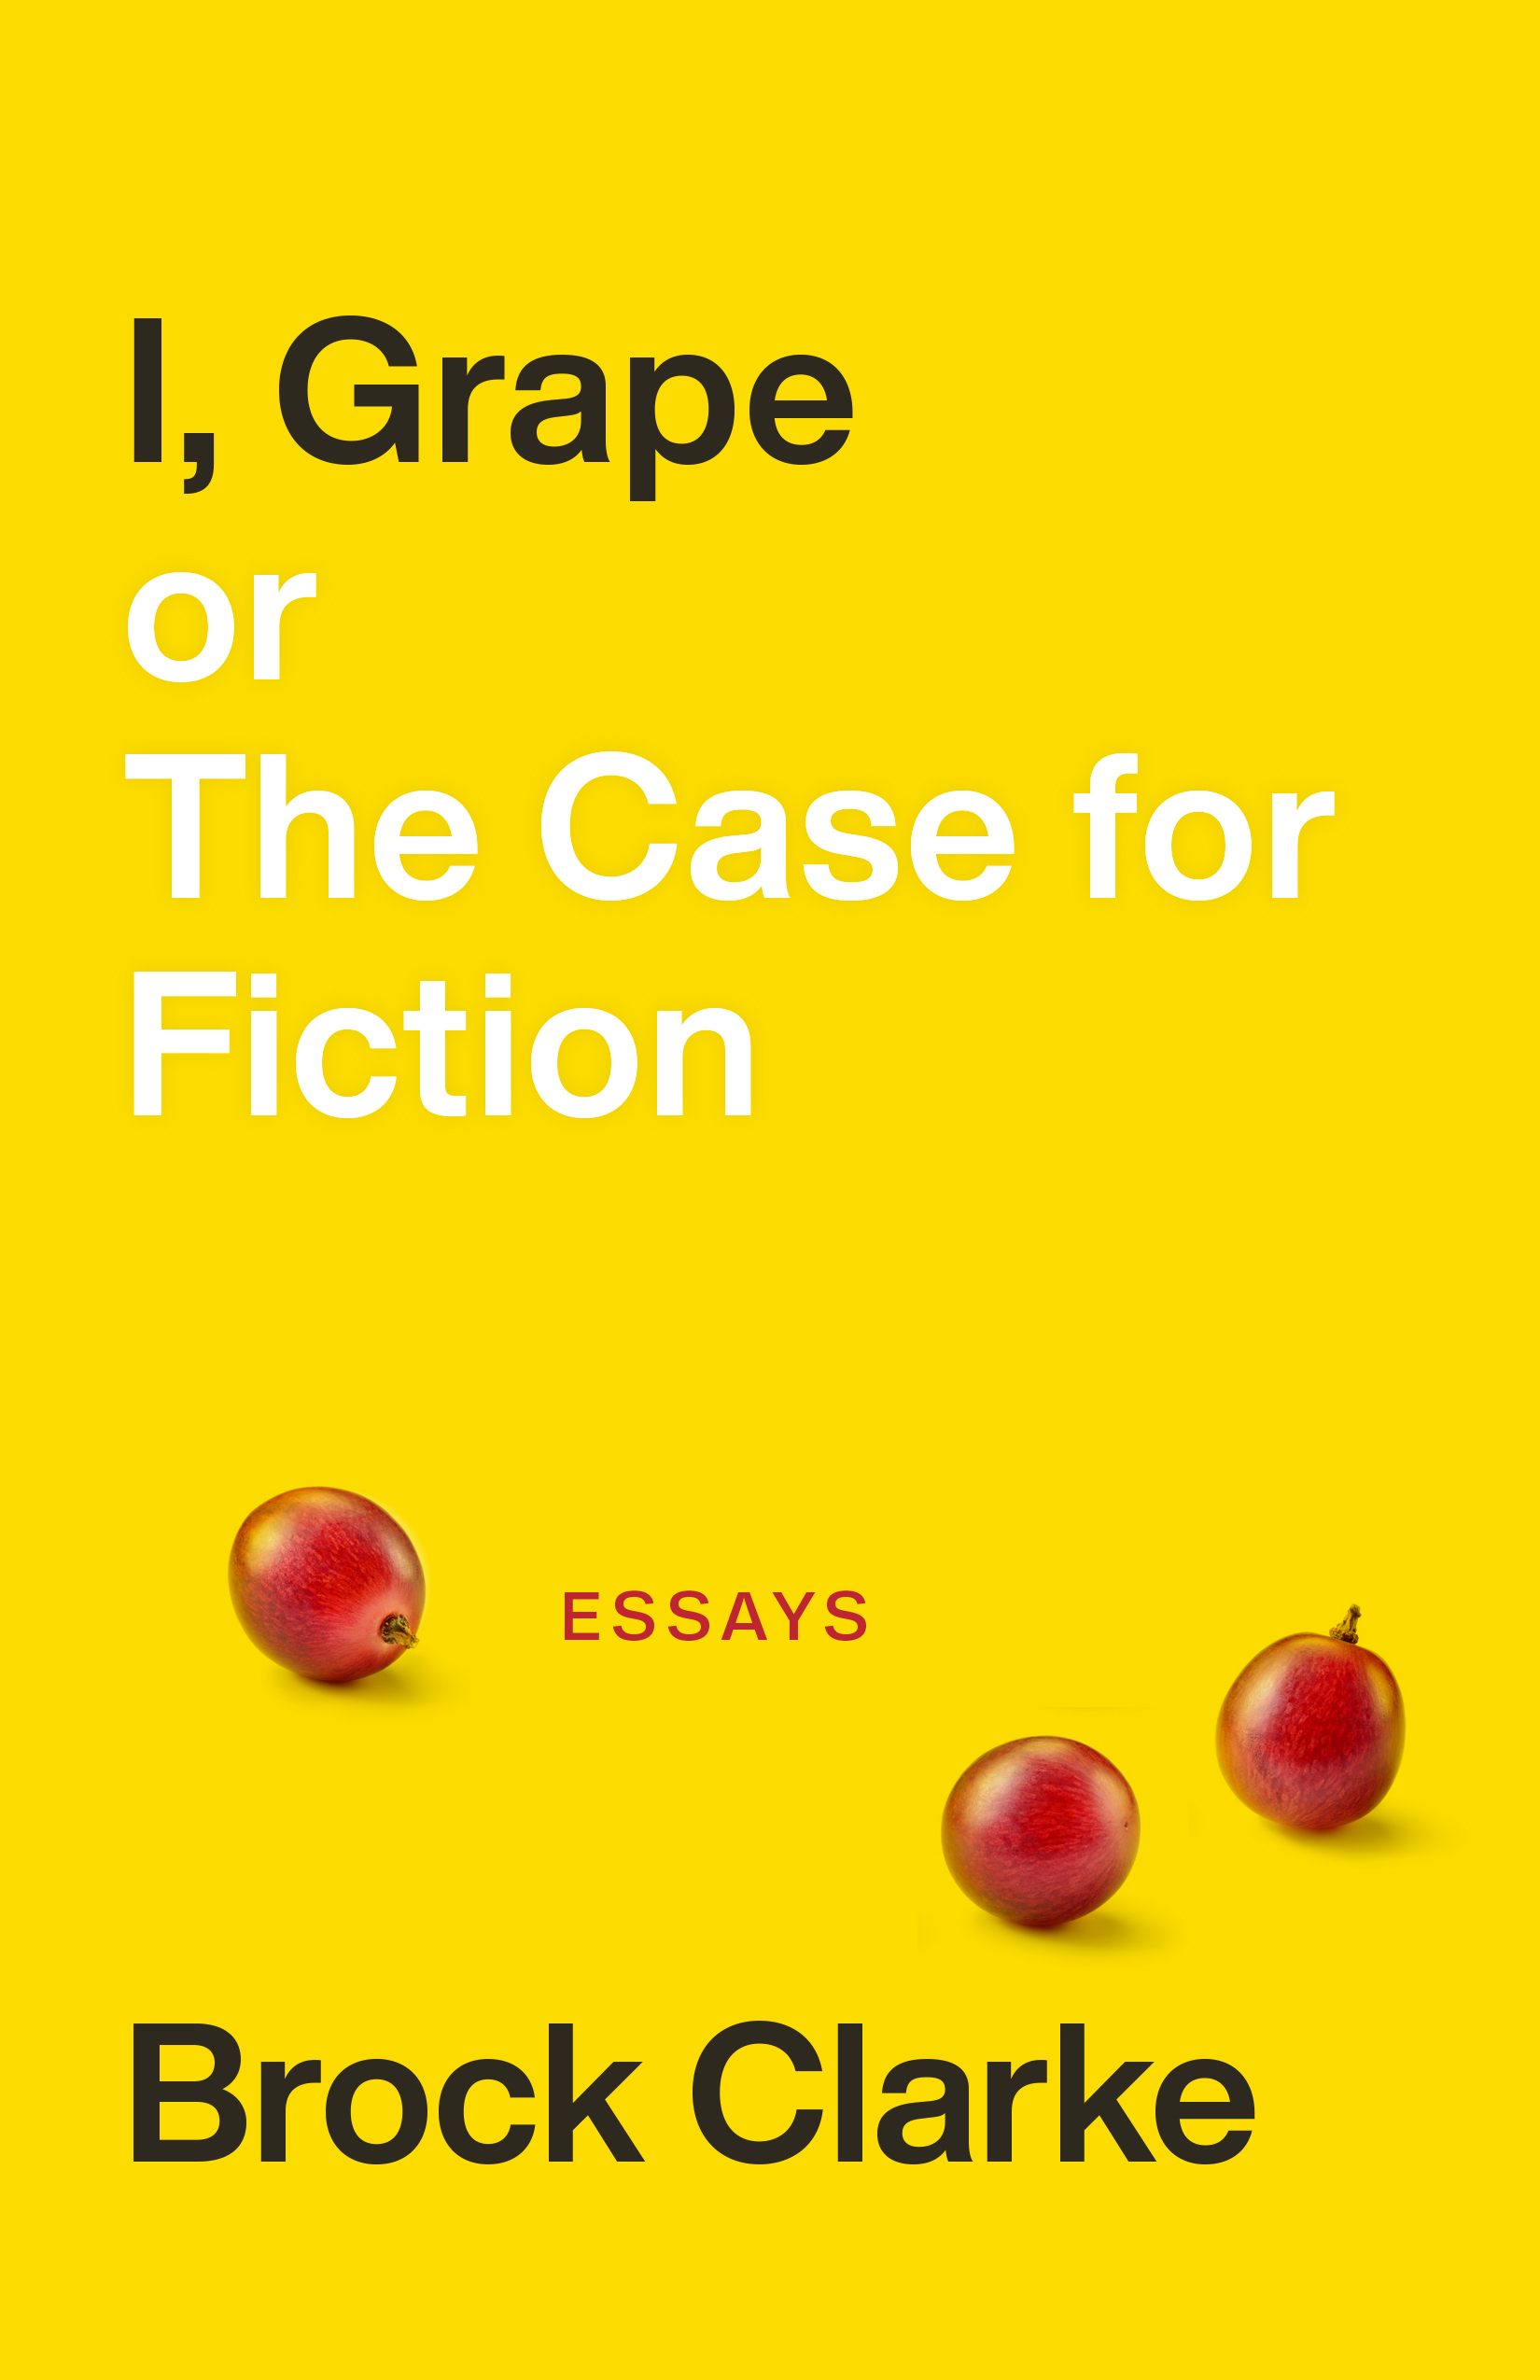 Book cover for Brock Clarke's essay collection I, Grape